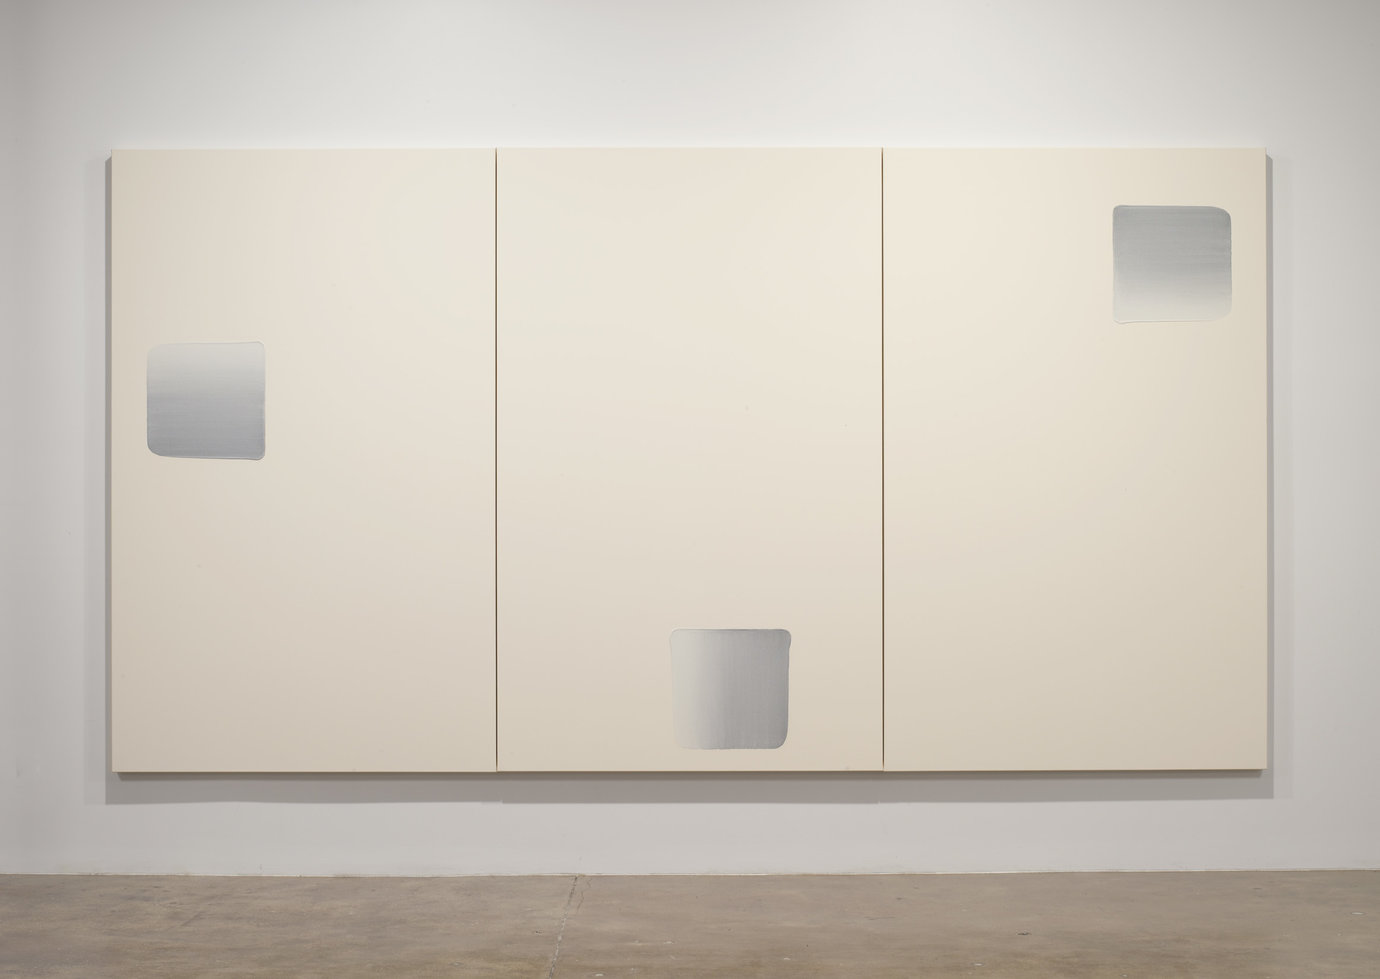 ", 2007. Oil on canvas, 7&apos; 5-3/8"" x 14&apos; 9"" (227 cm x 449.6 cm), overall installed&#x000A;7&apos; 5-3/8"" x 4&apos; 11"" (227 cm x 149.9 cm), 3 panels, each."